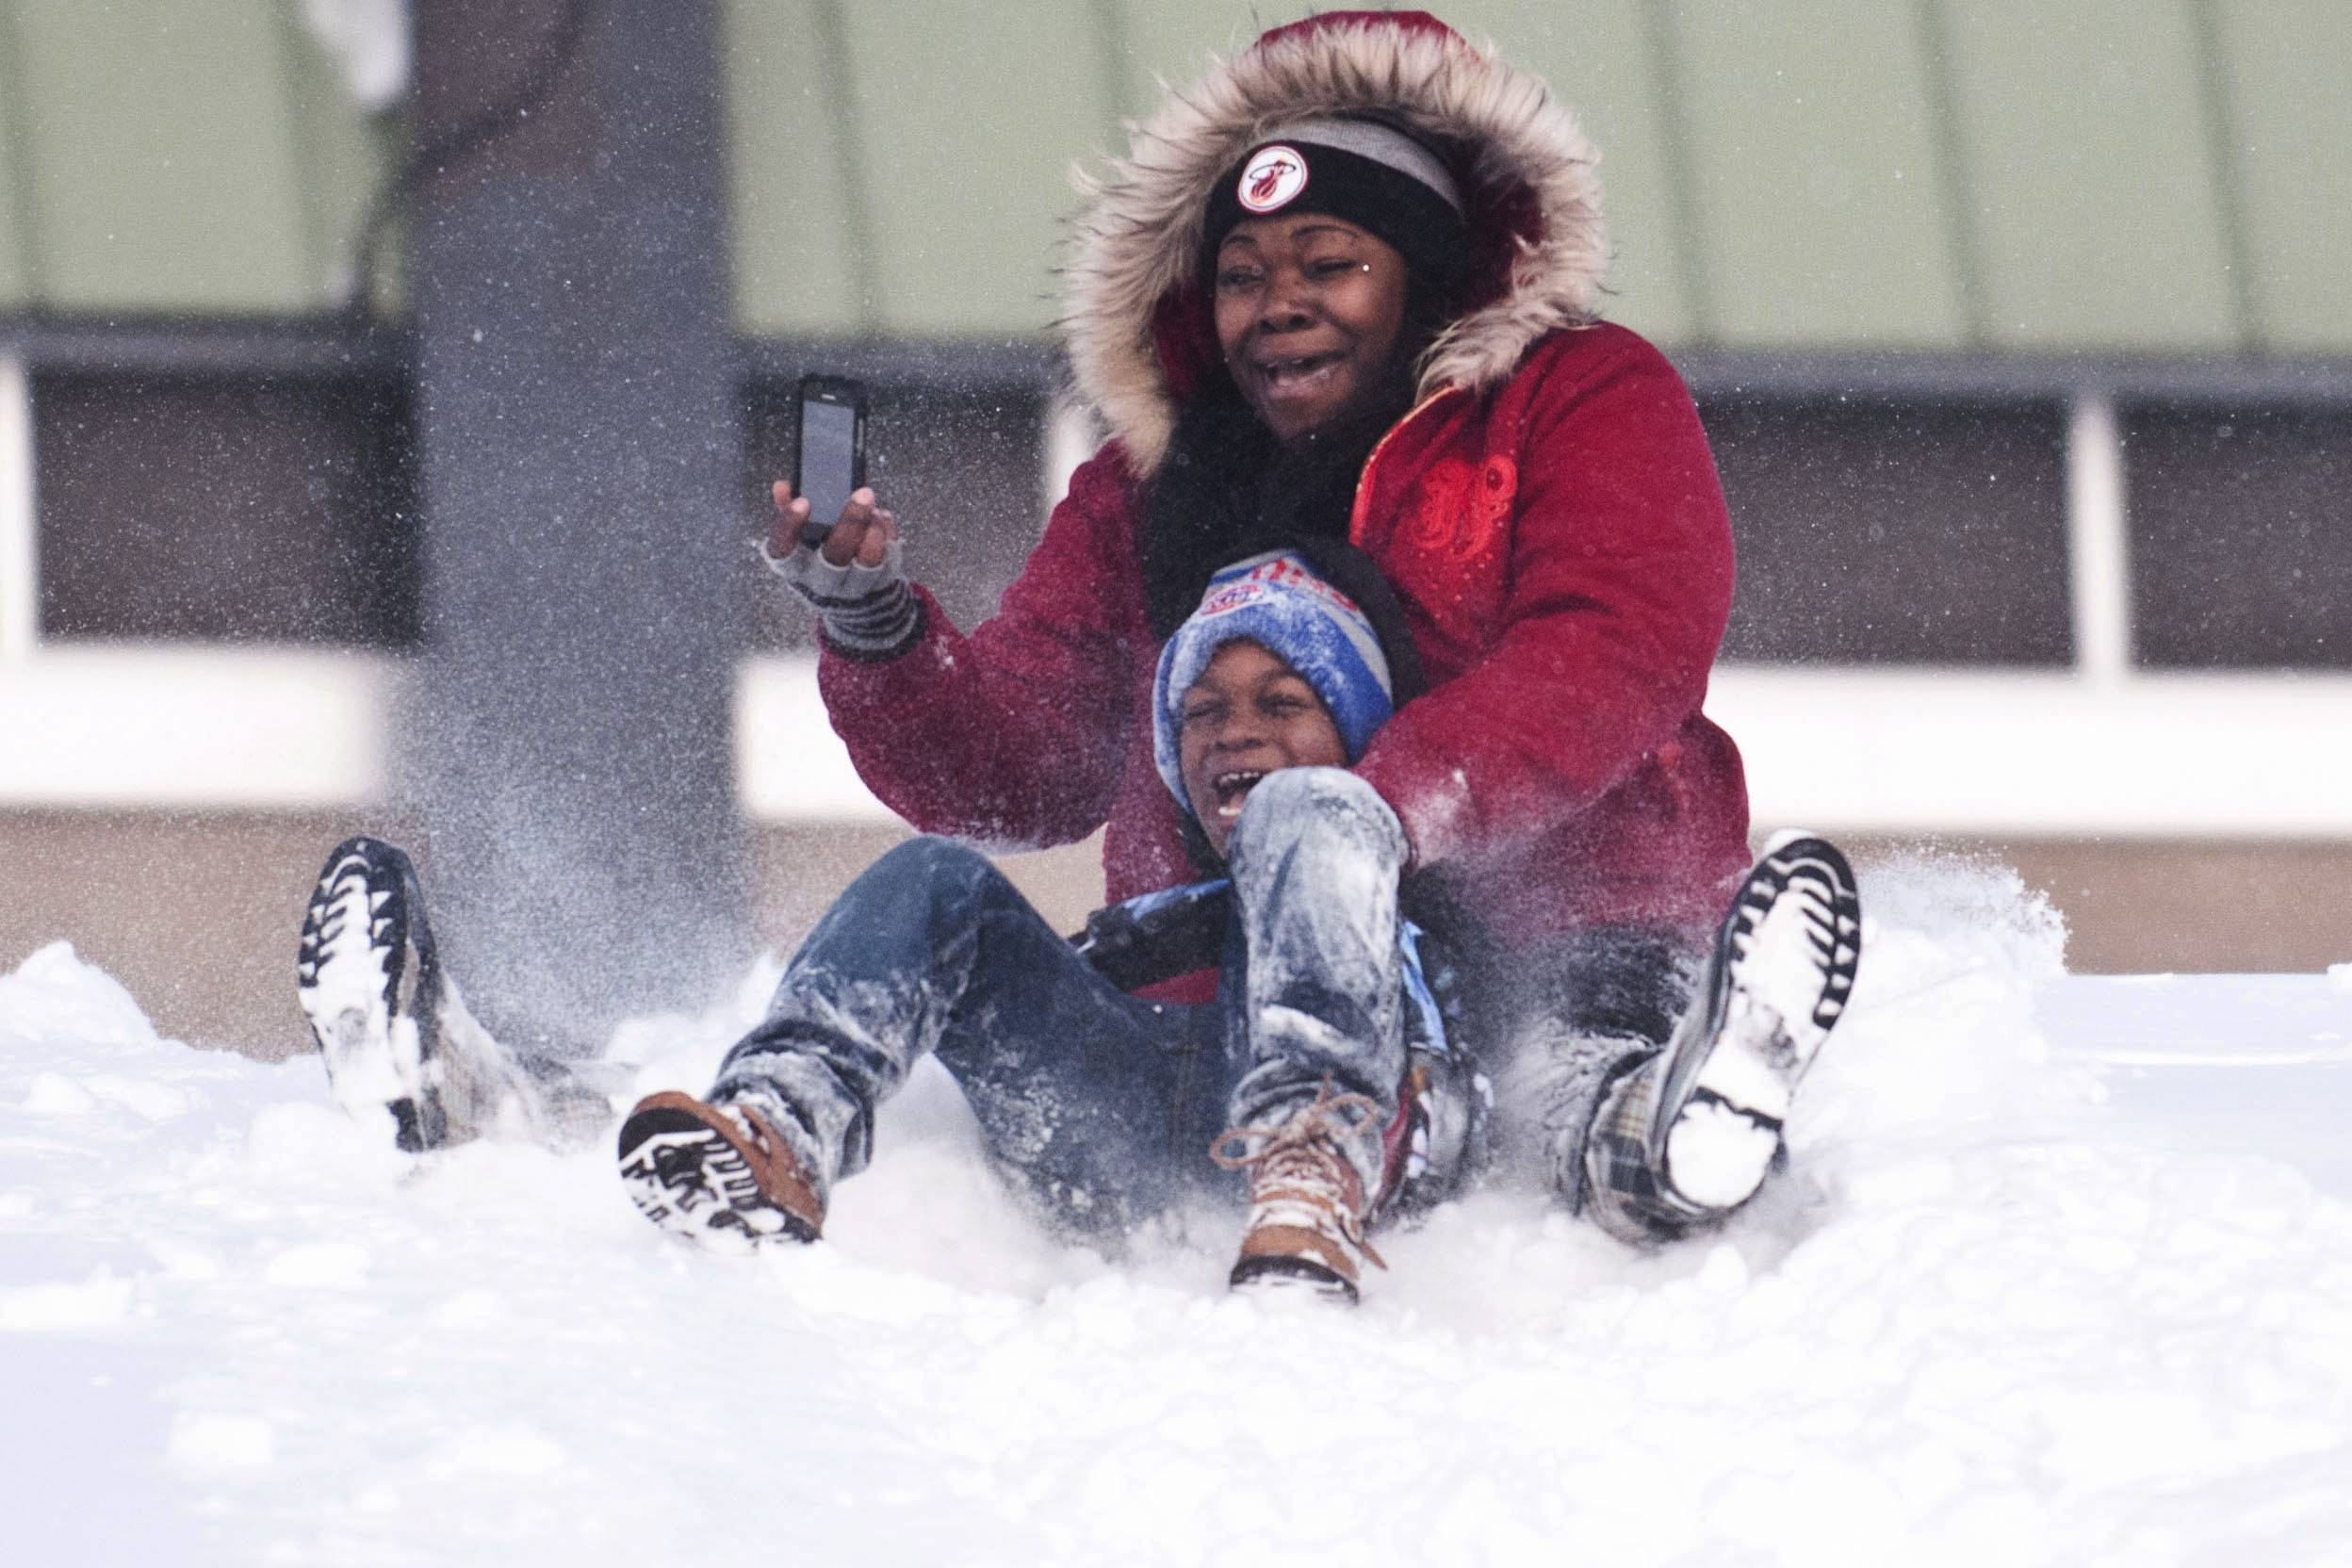 Sharrissa McKinzie, of Flint, sleds down a hill with her son Detrayvion McKinzie, last week. Another round of snow and ice is forecast for the Midwest and Mid-Atlantic.